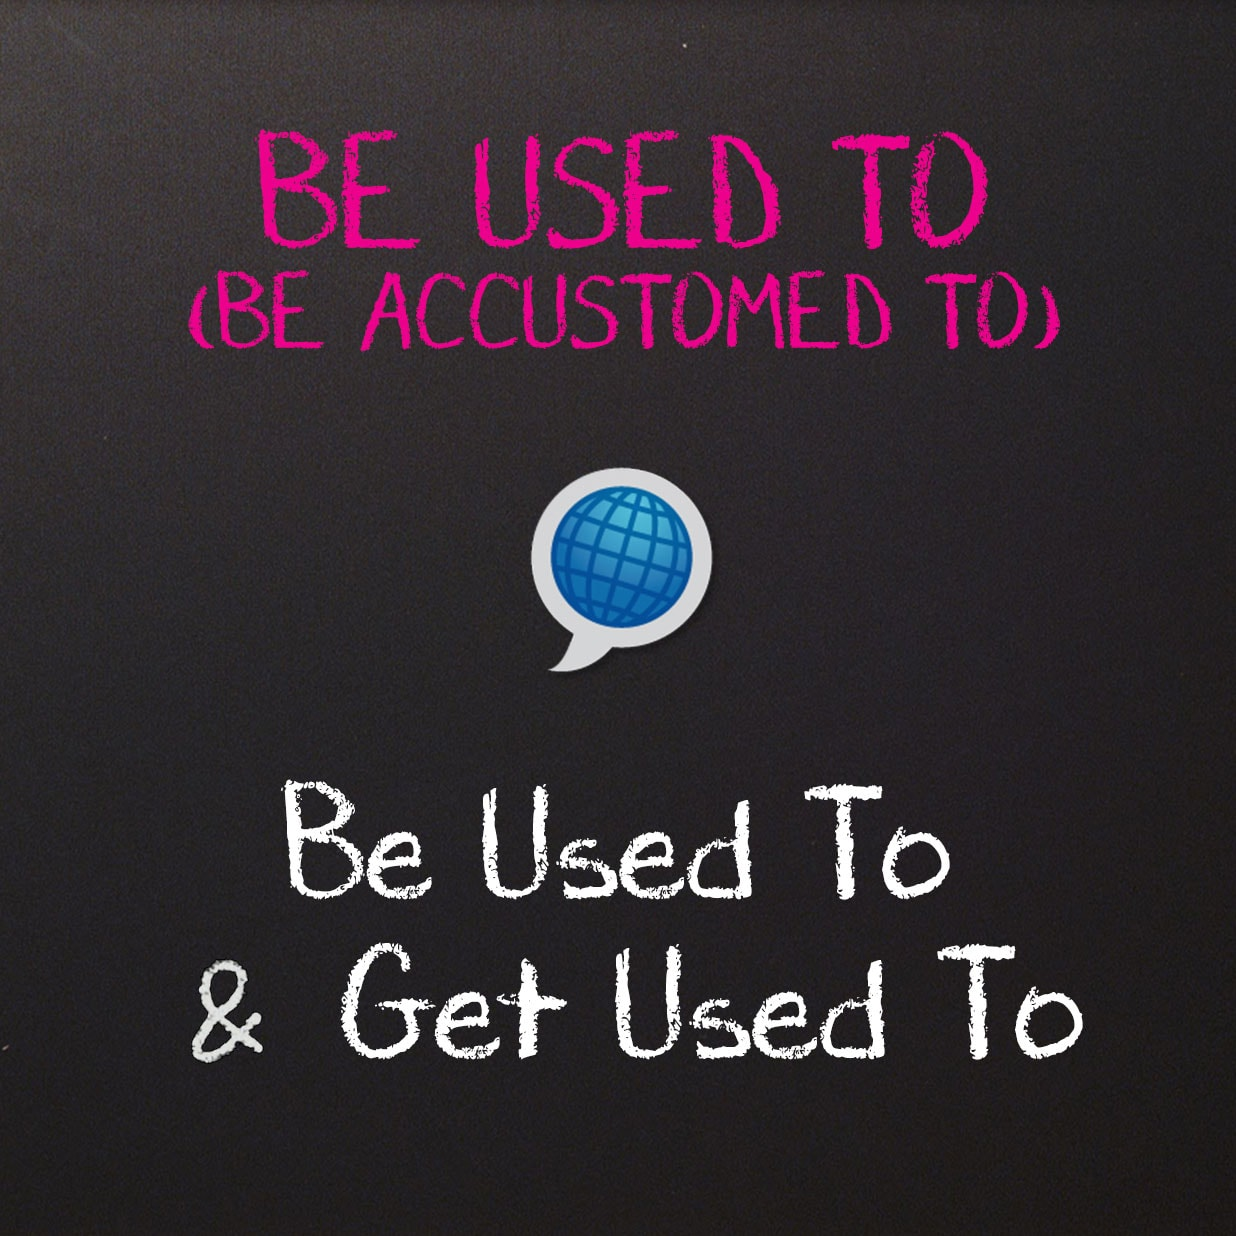 Be Used To and Get Used To